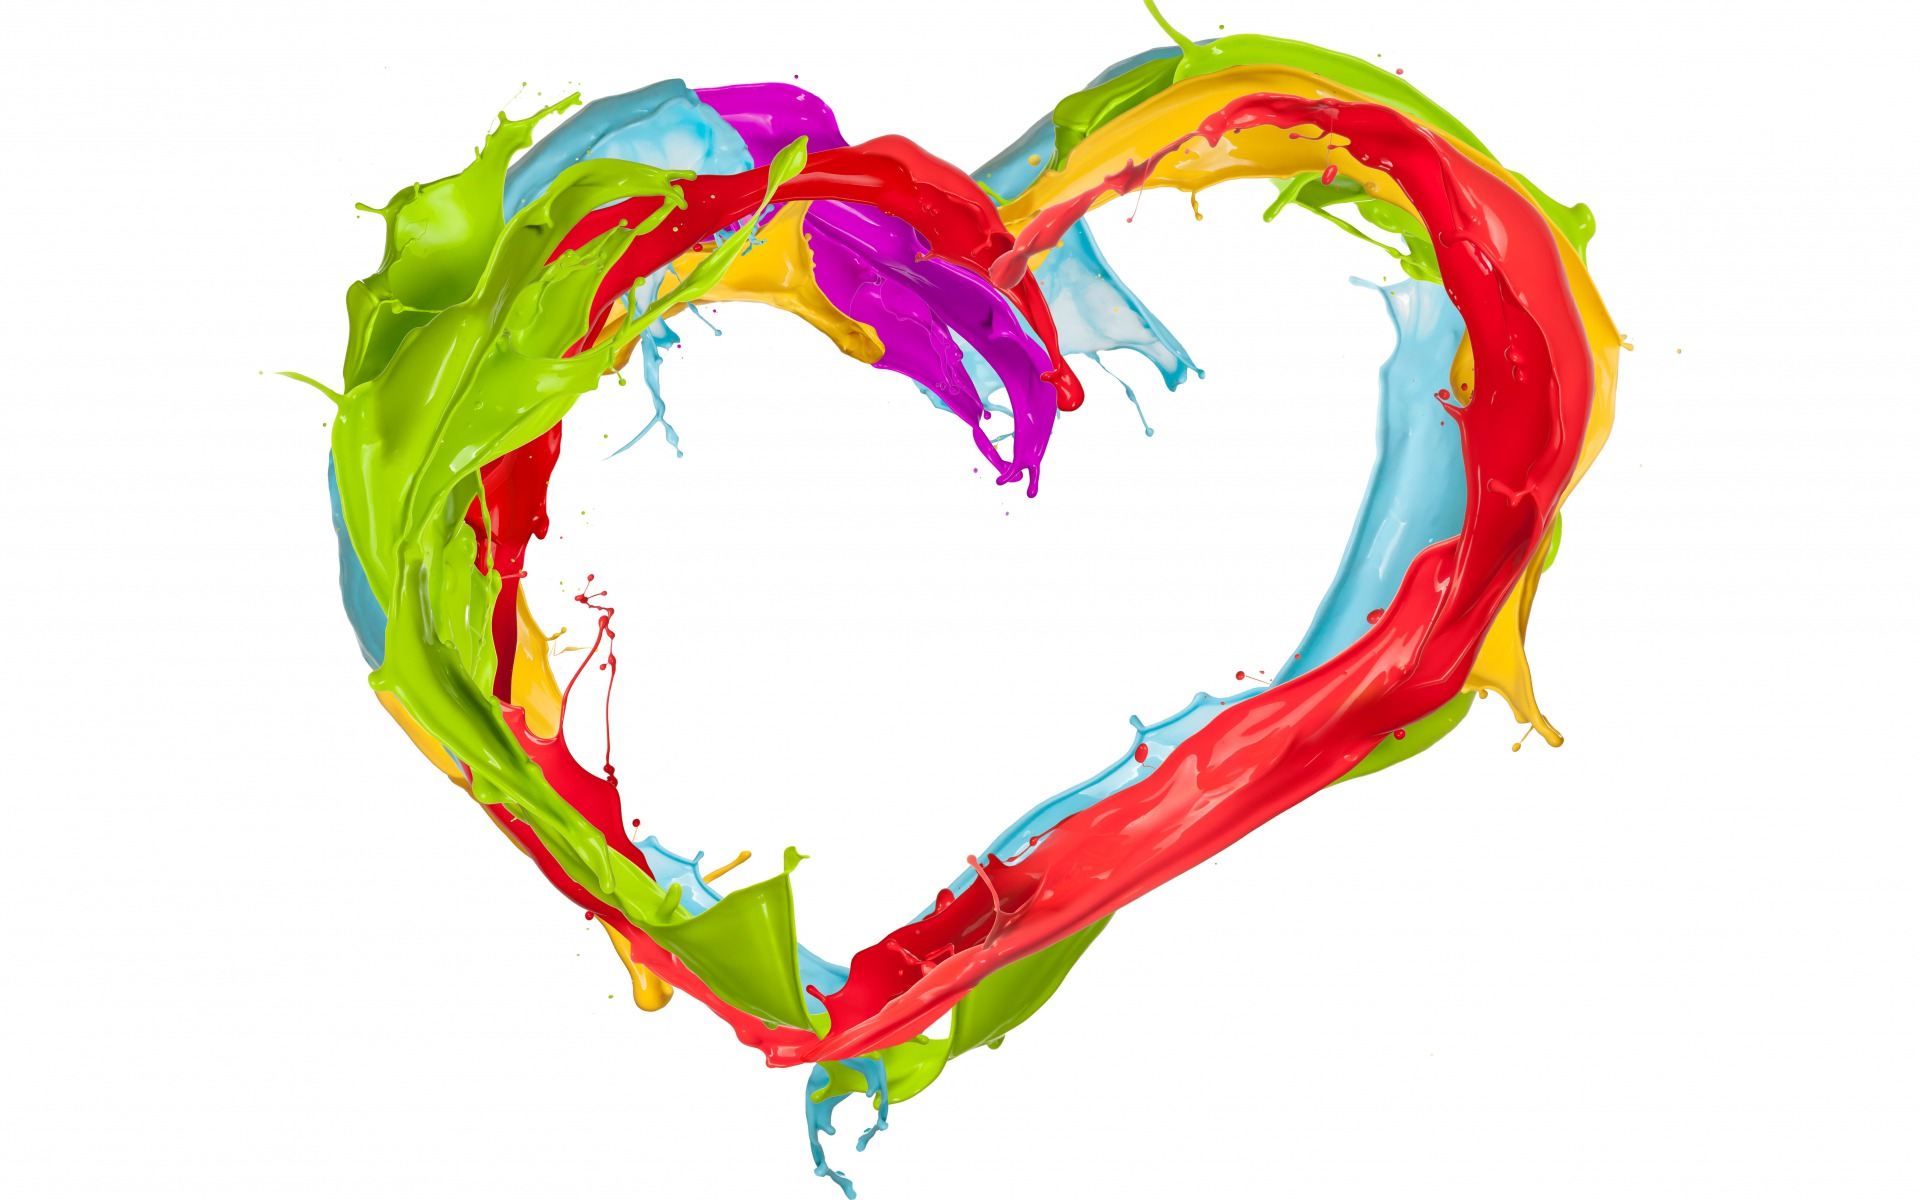 Paint Splatter Heart wallpapers | Paint Splatter Heart stock photos